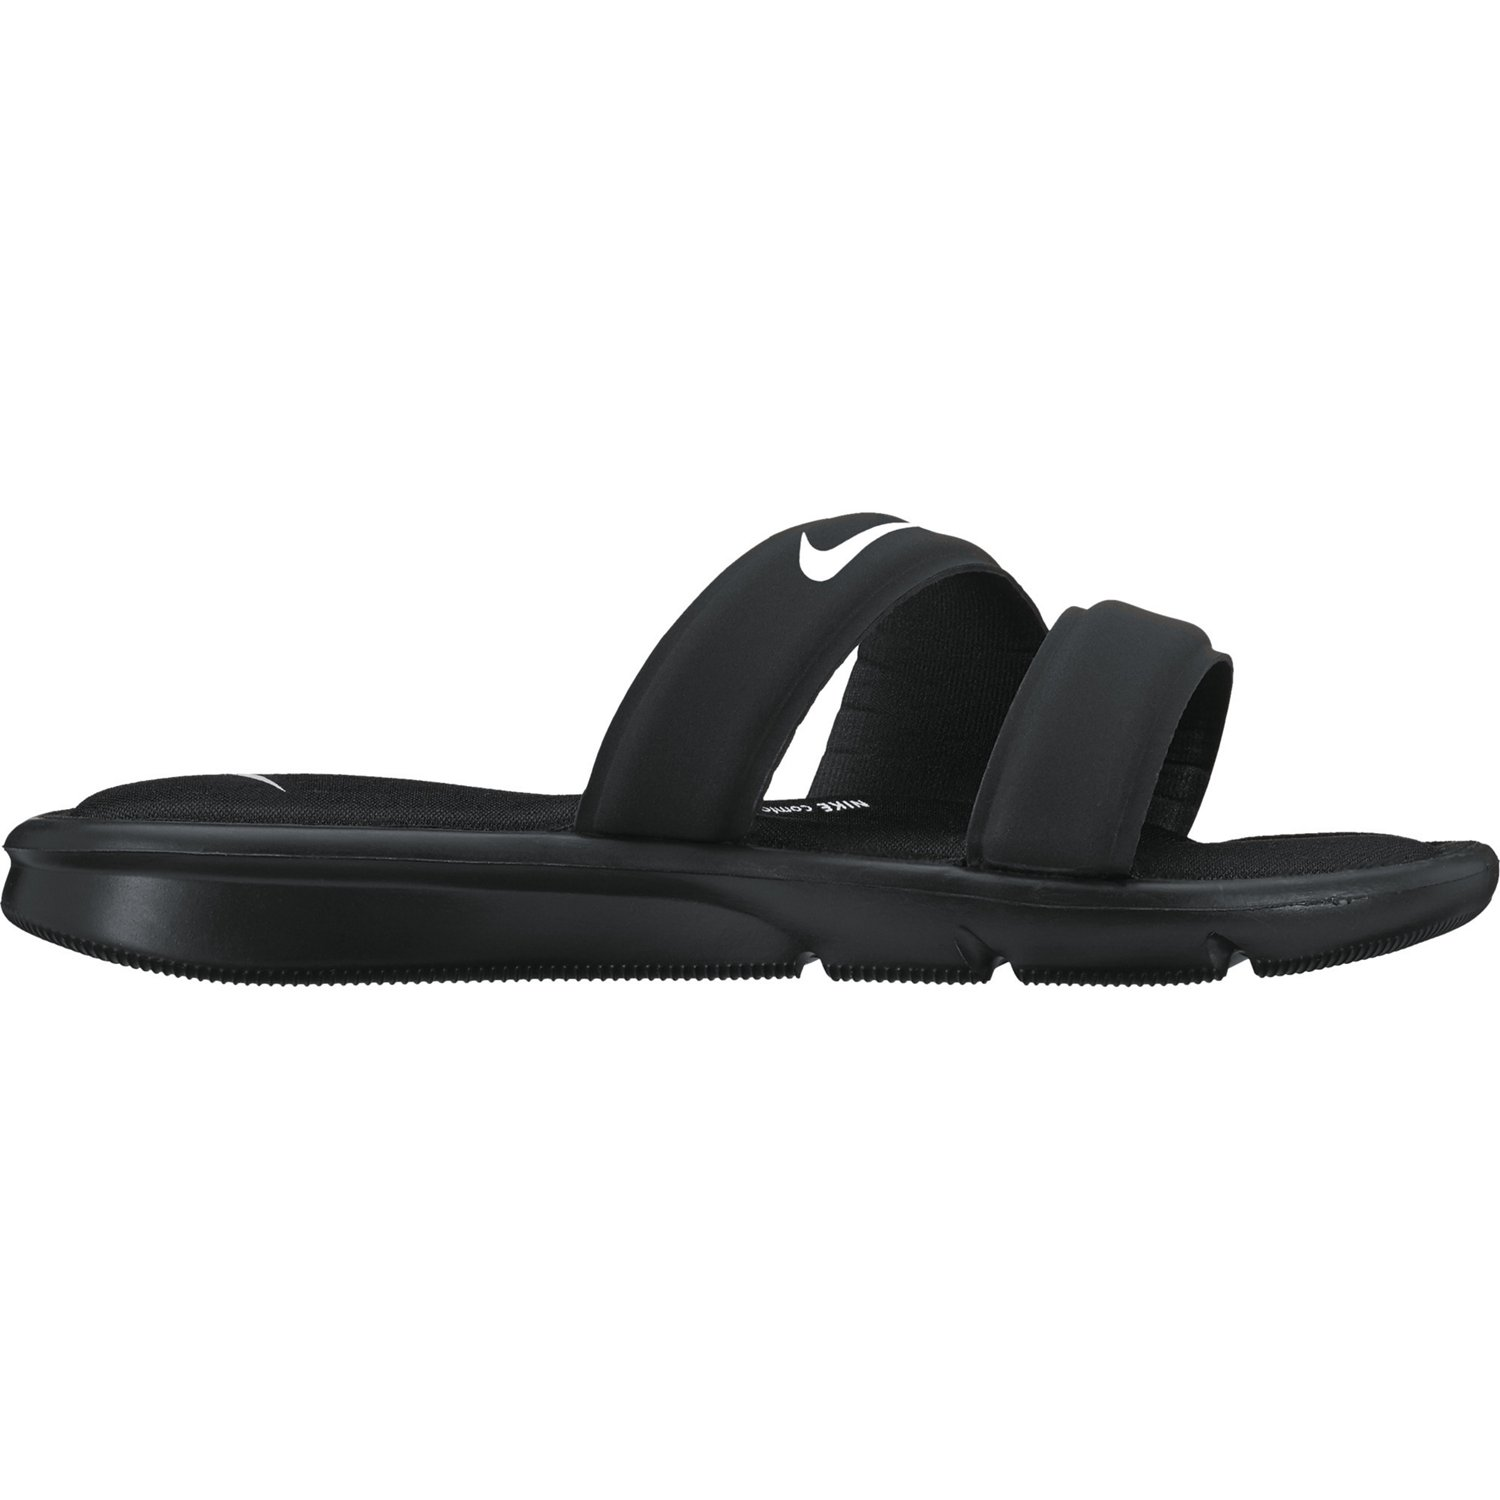 b95139663e92 Display product reviews for Nike Women s Ultra Comfort Slide Sandals